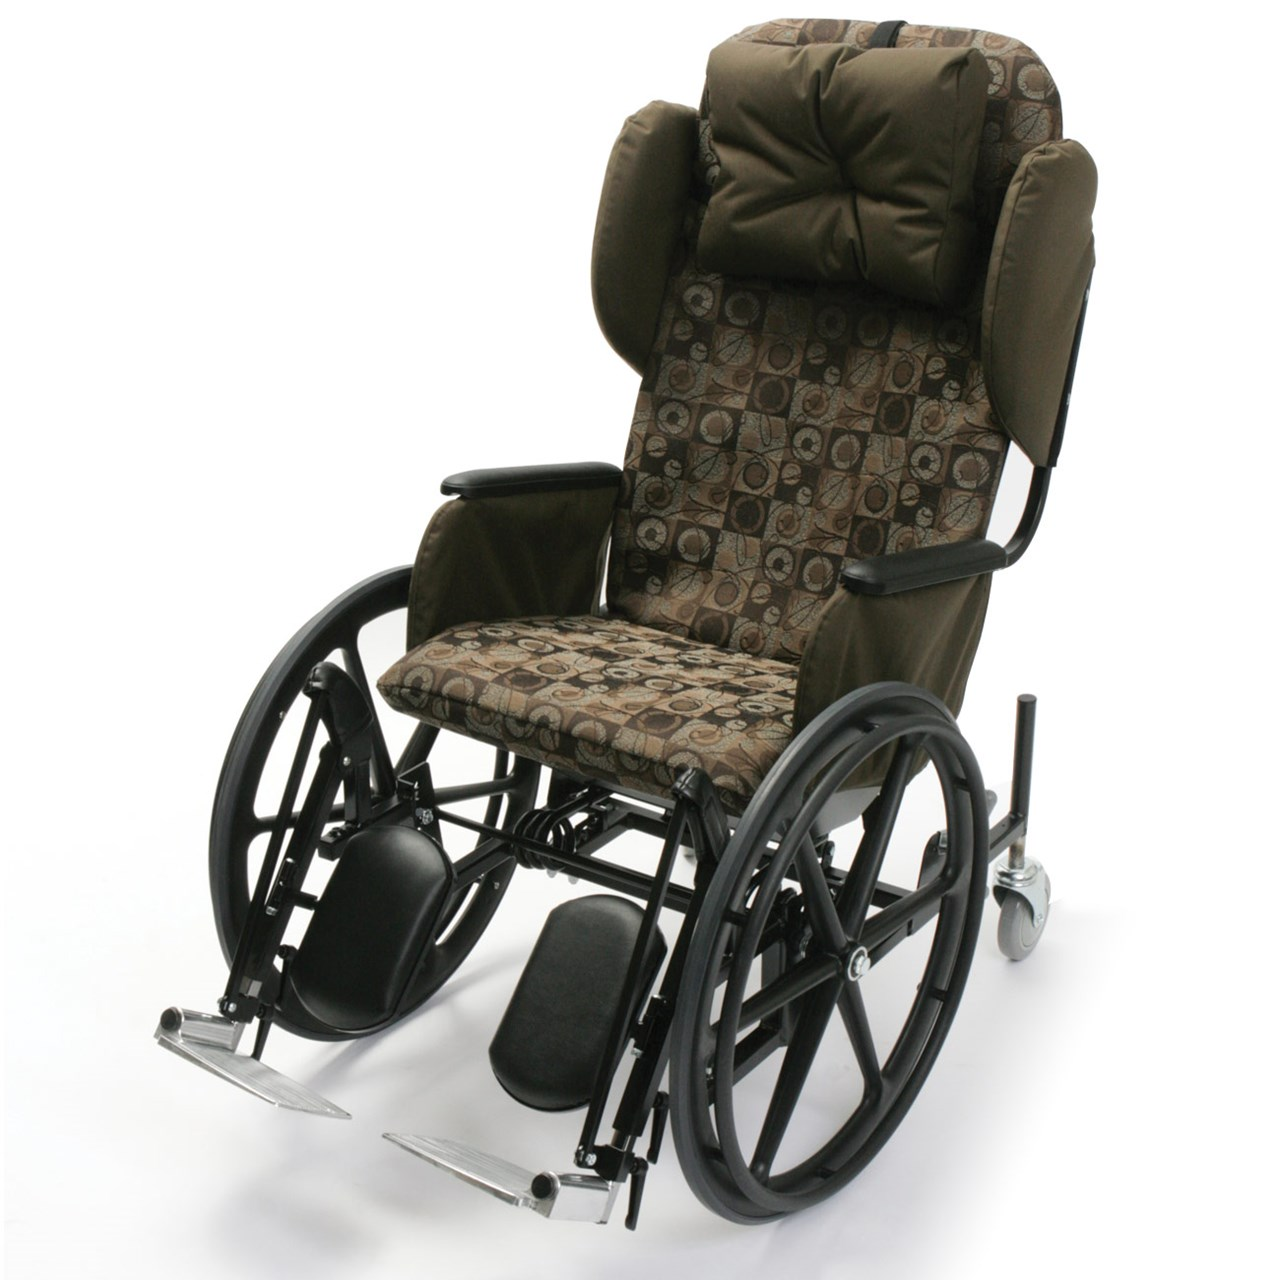 Rock-King X3000 Wheel Chair Kit